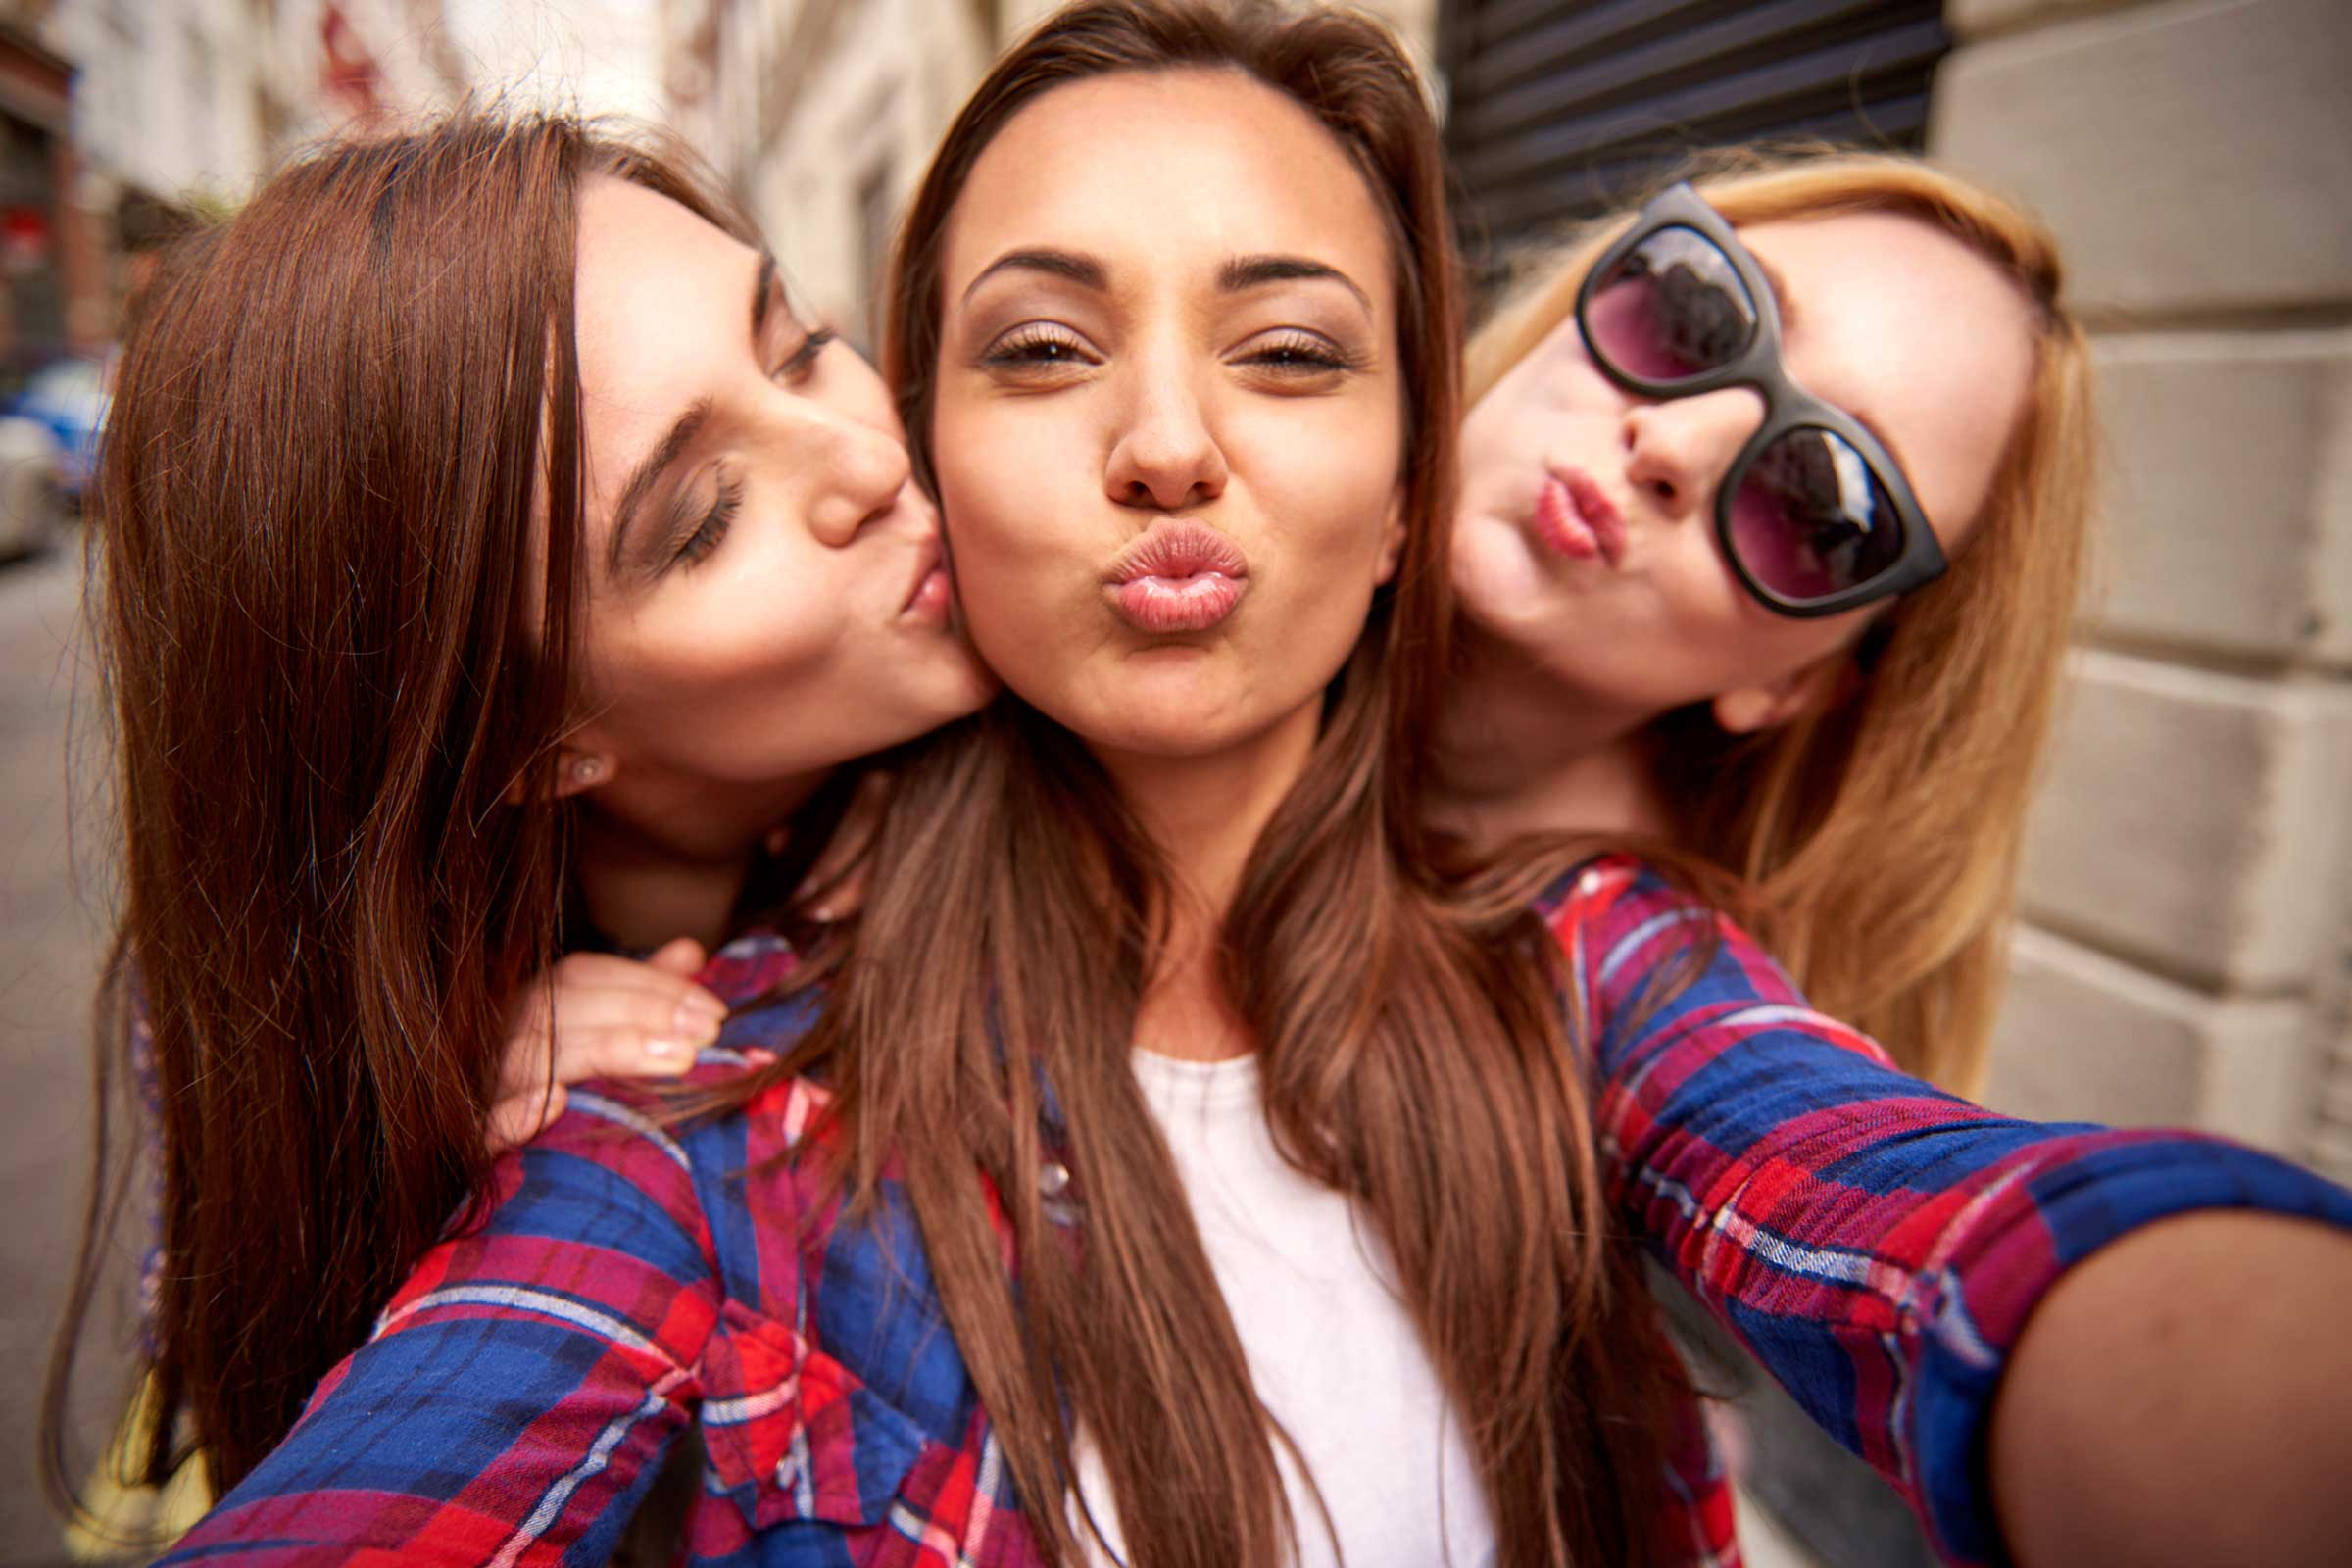 Facts about girls selfies